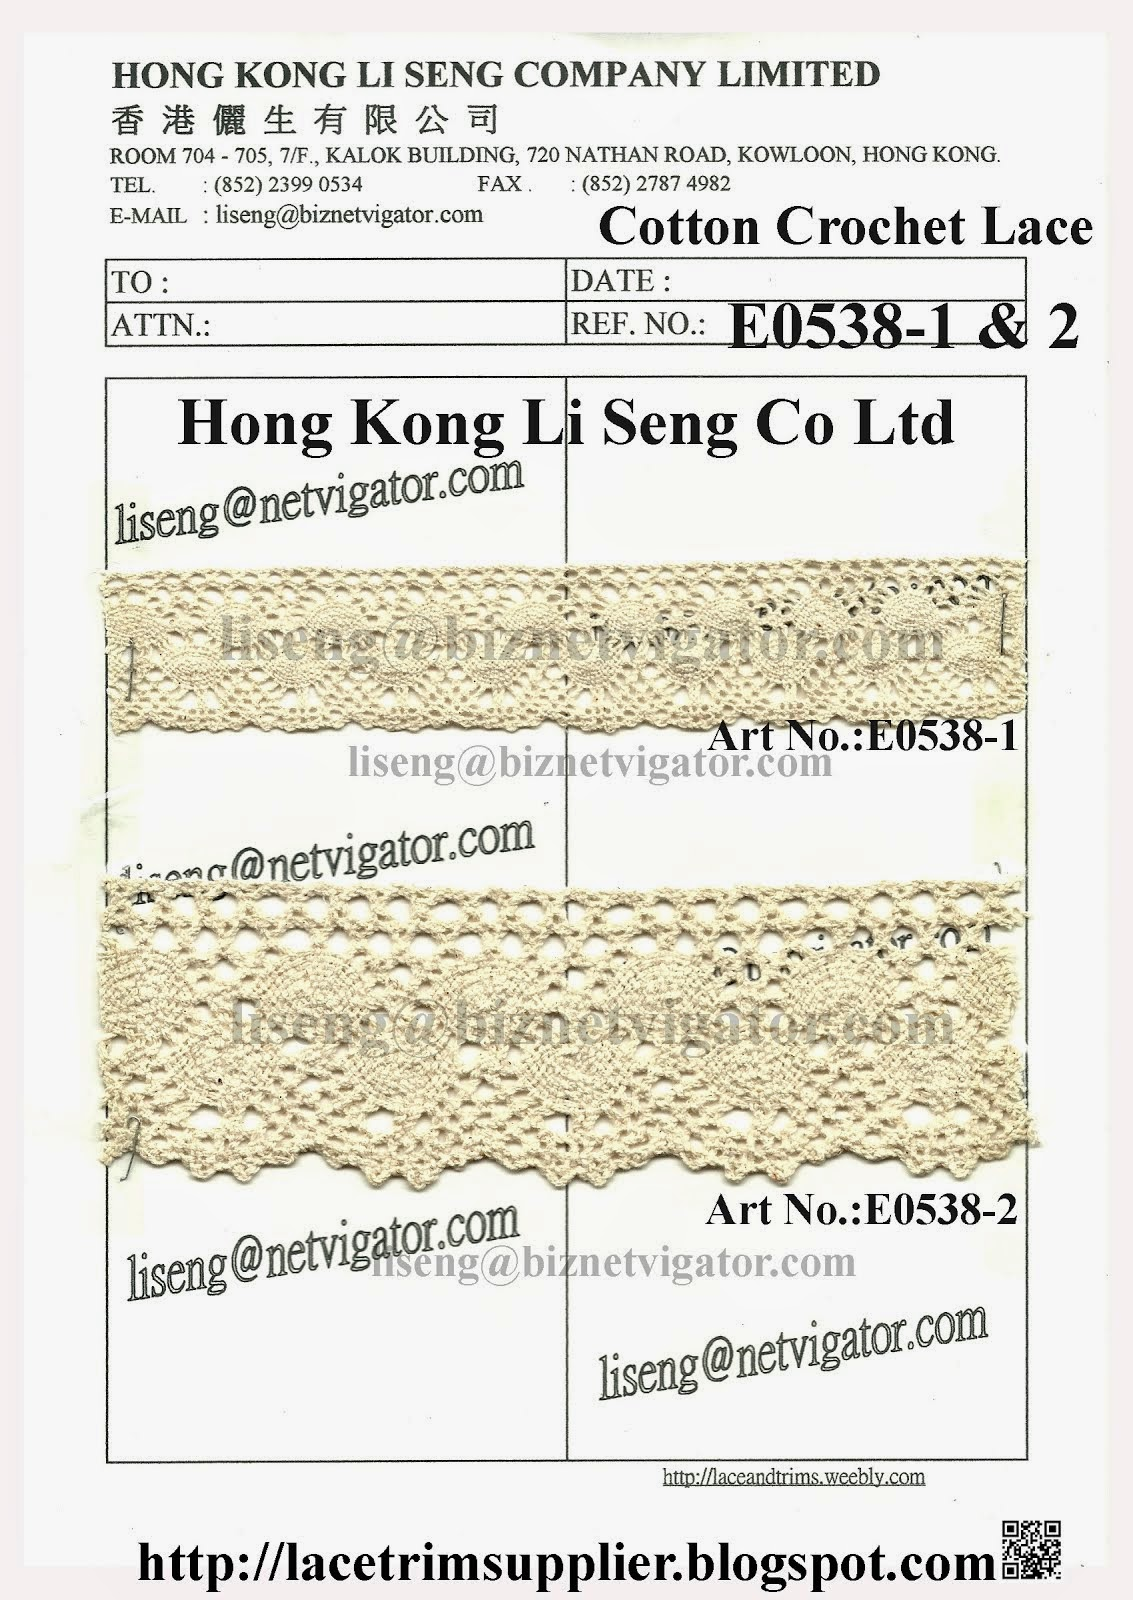 The Best Cotton Crochet Lace Trims Factory - Hong Kong Li Seng Co Ltd